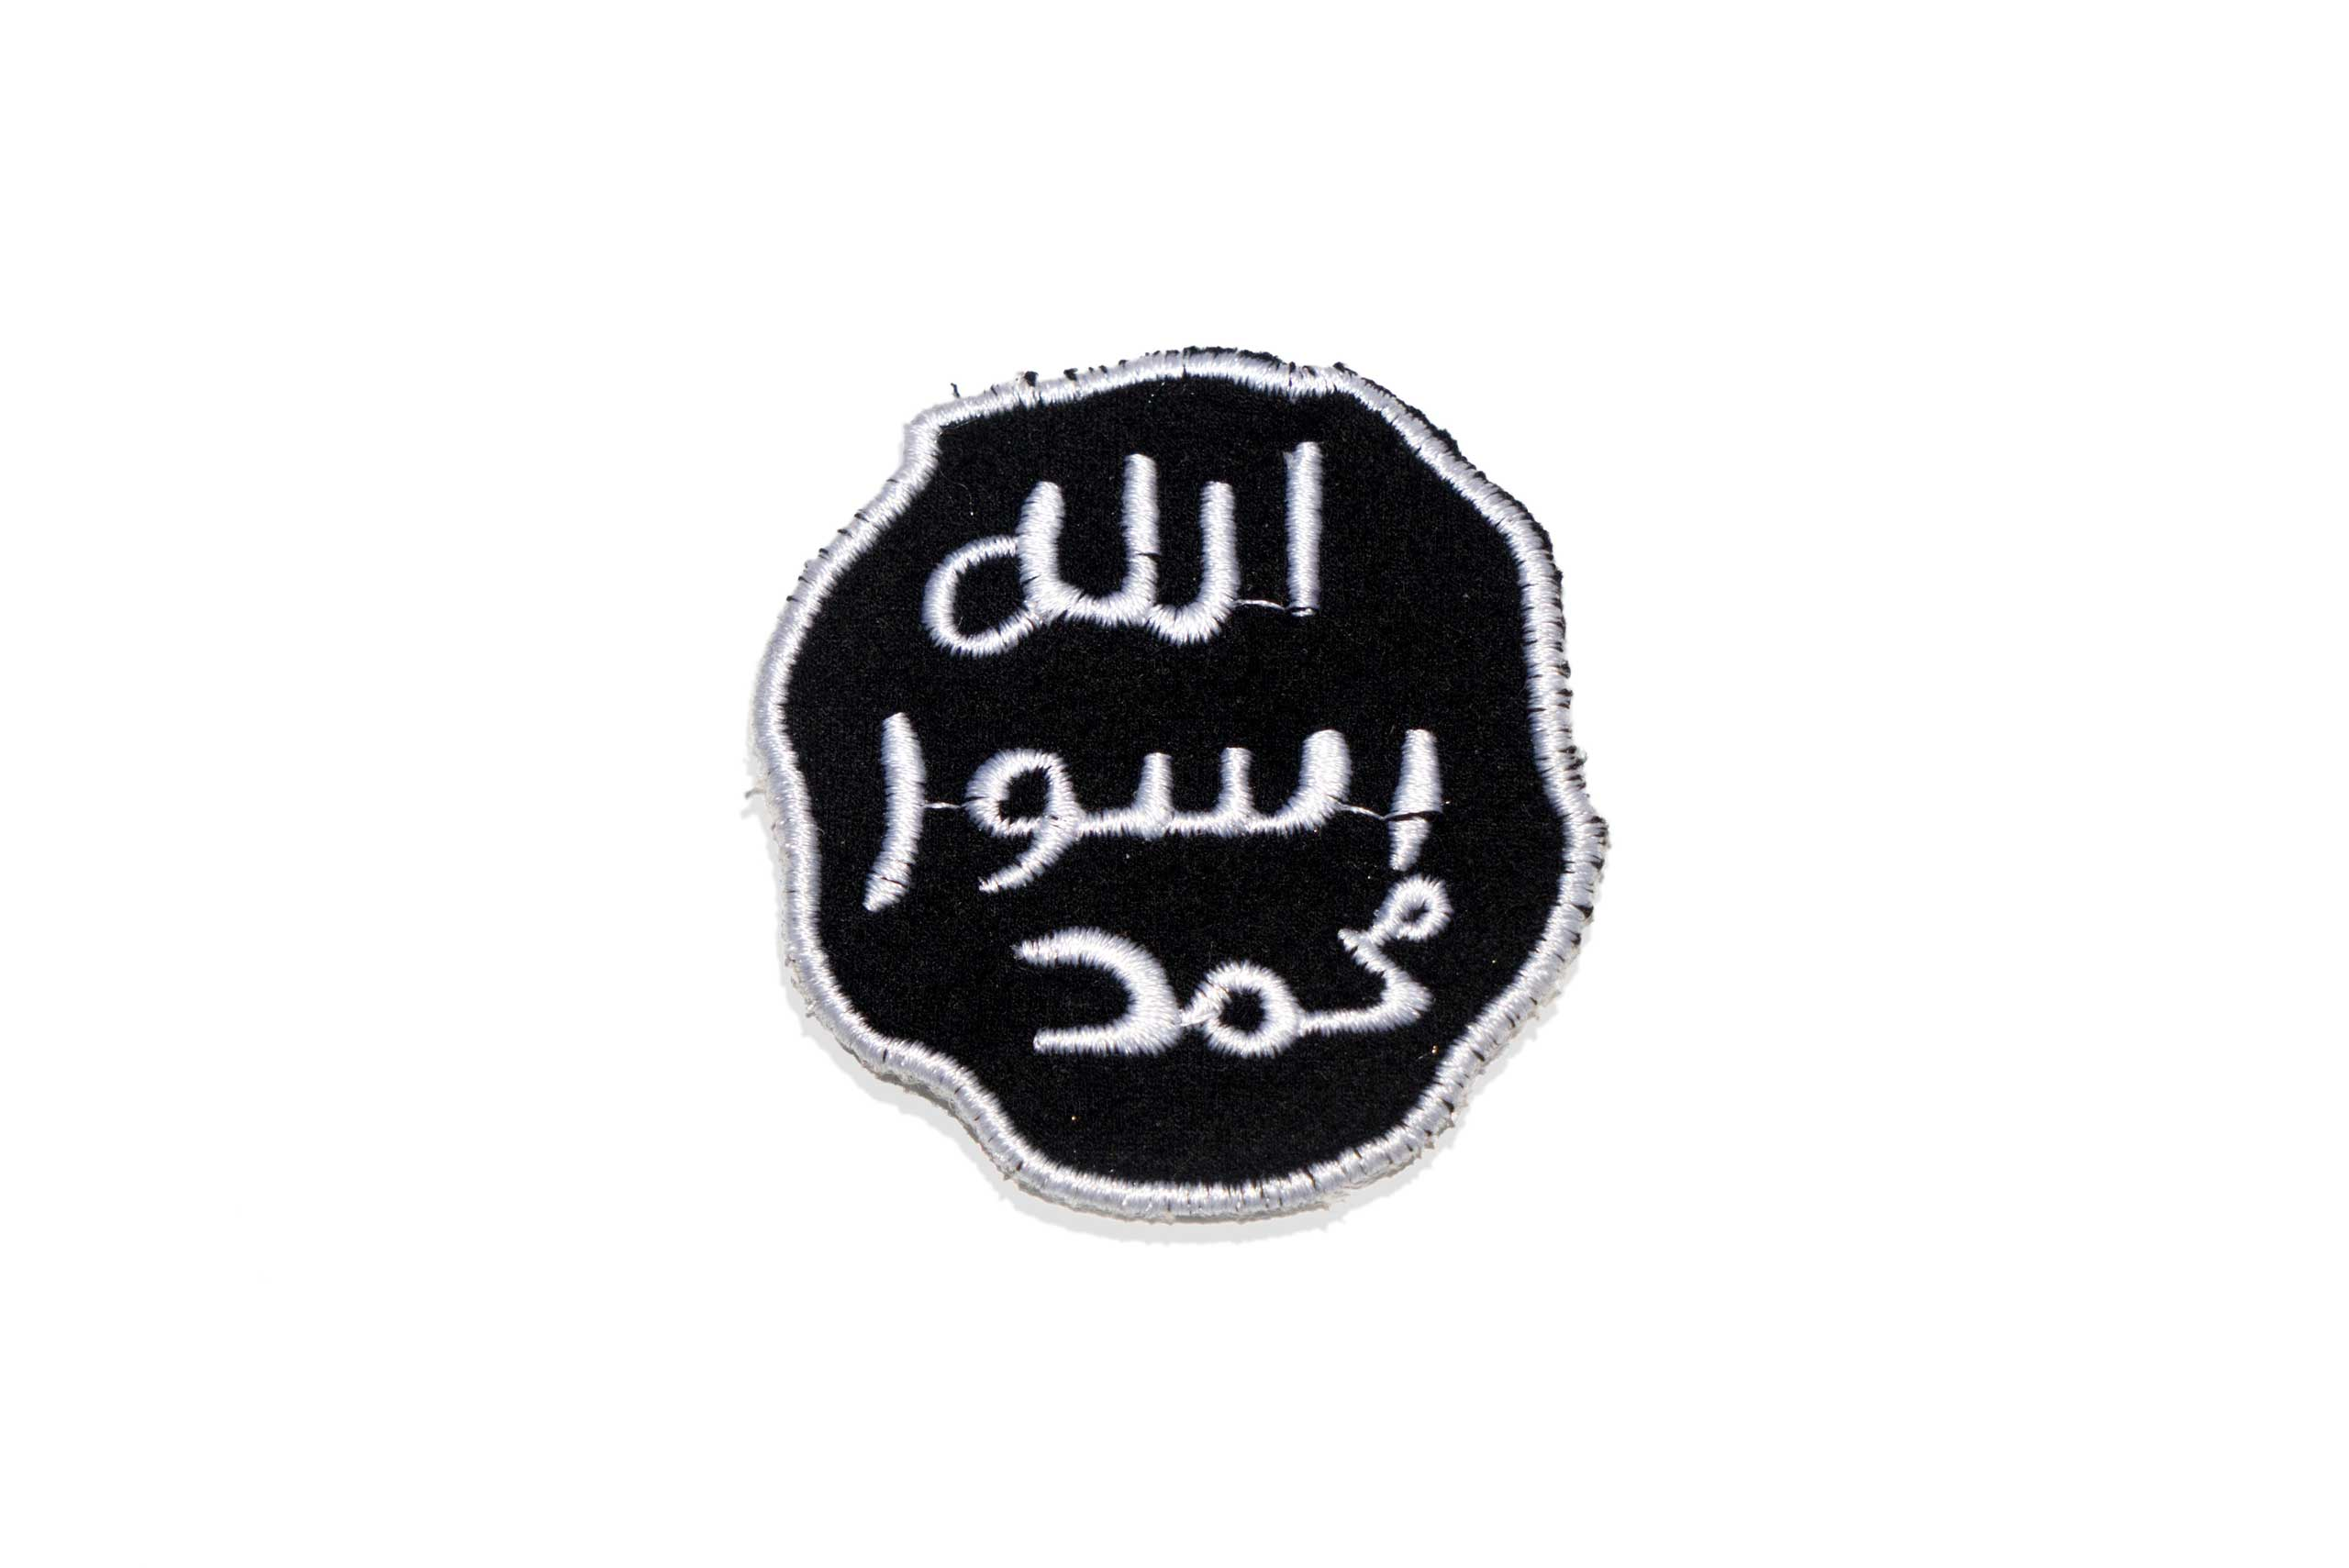 A badge to be sewn onto clothing featuring the current iconography of the Islamic State, found in a Islamic clothing and accessory shop in the Bagcilar district of Istanbul, Turkey.